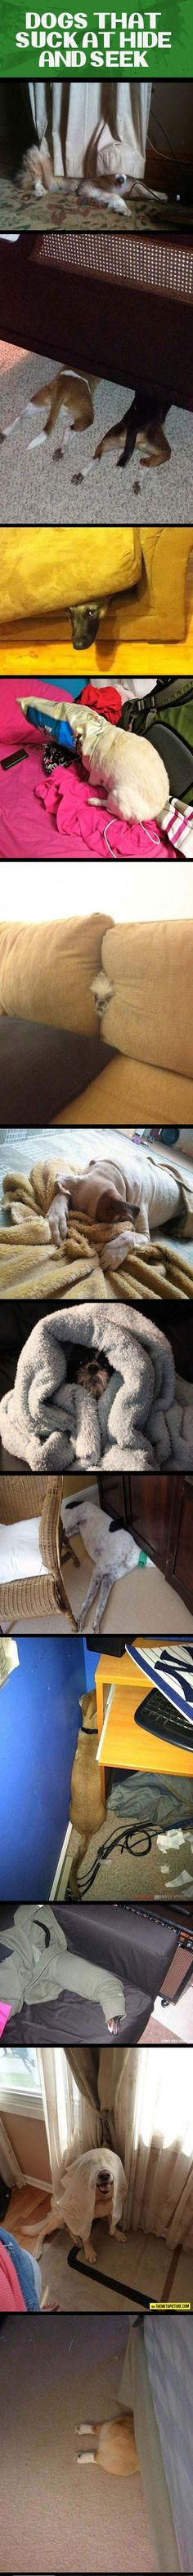 Dogs that are really bad at hide and seek... - The Meta Picture